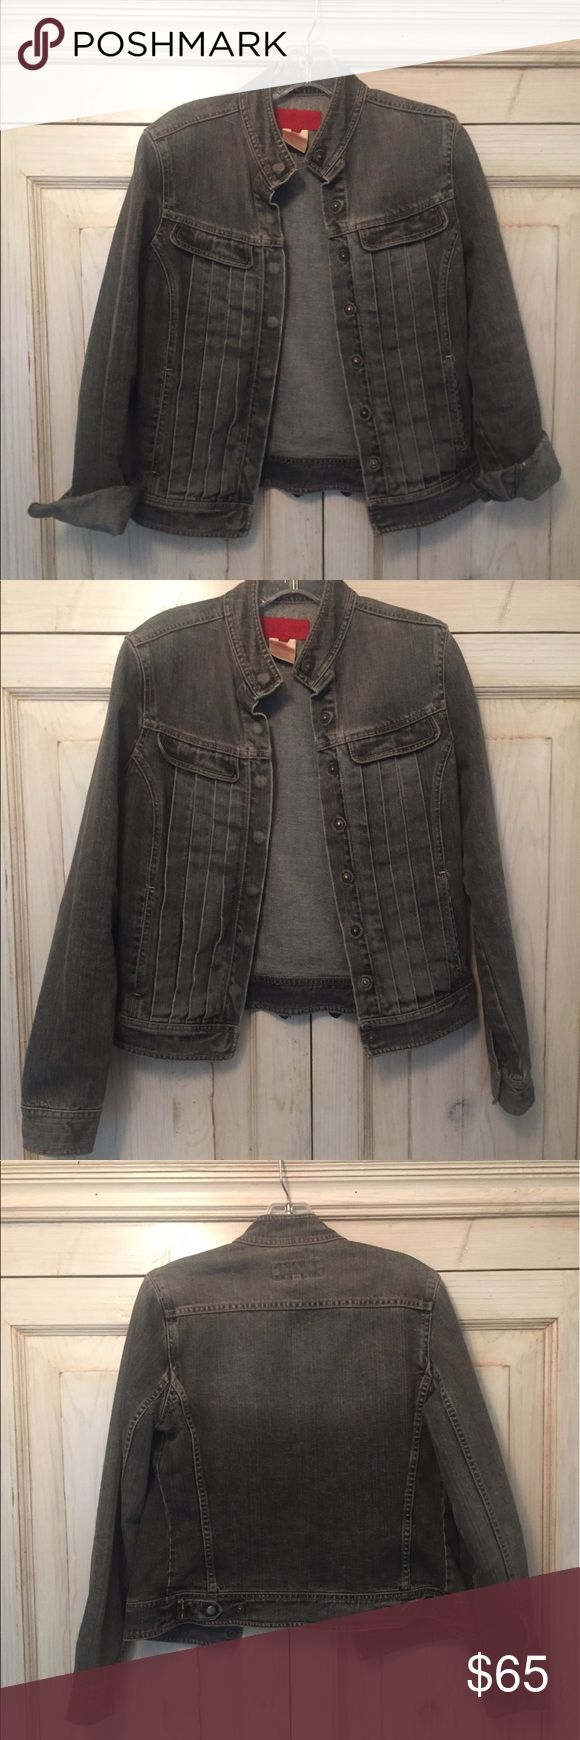 FRENCH CONNECTION denim jean jacket FRENCH CONNECTION denim jean jacket with pleats. dark wash. great condition! Looks cute with sleeves rolled up or down! French Connection Jackets & Coats Jean Jackets